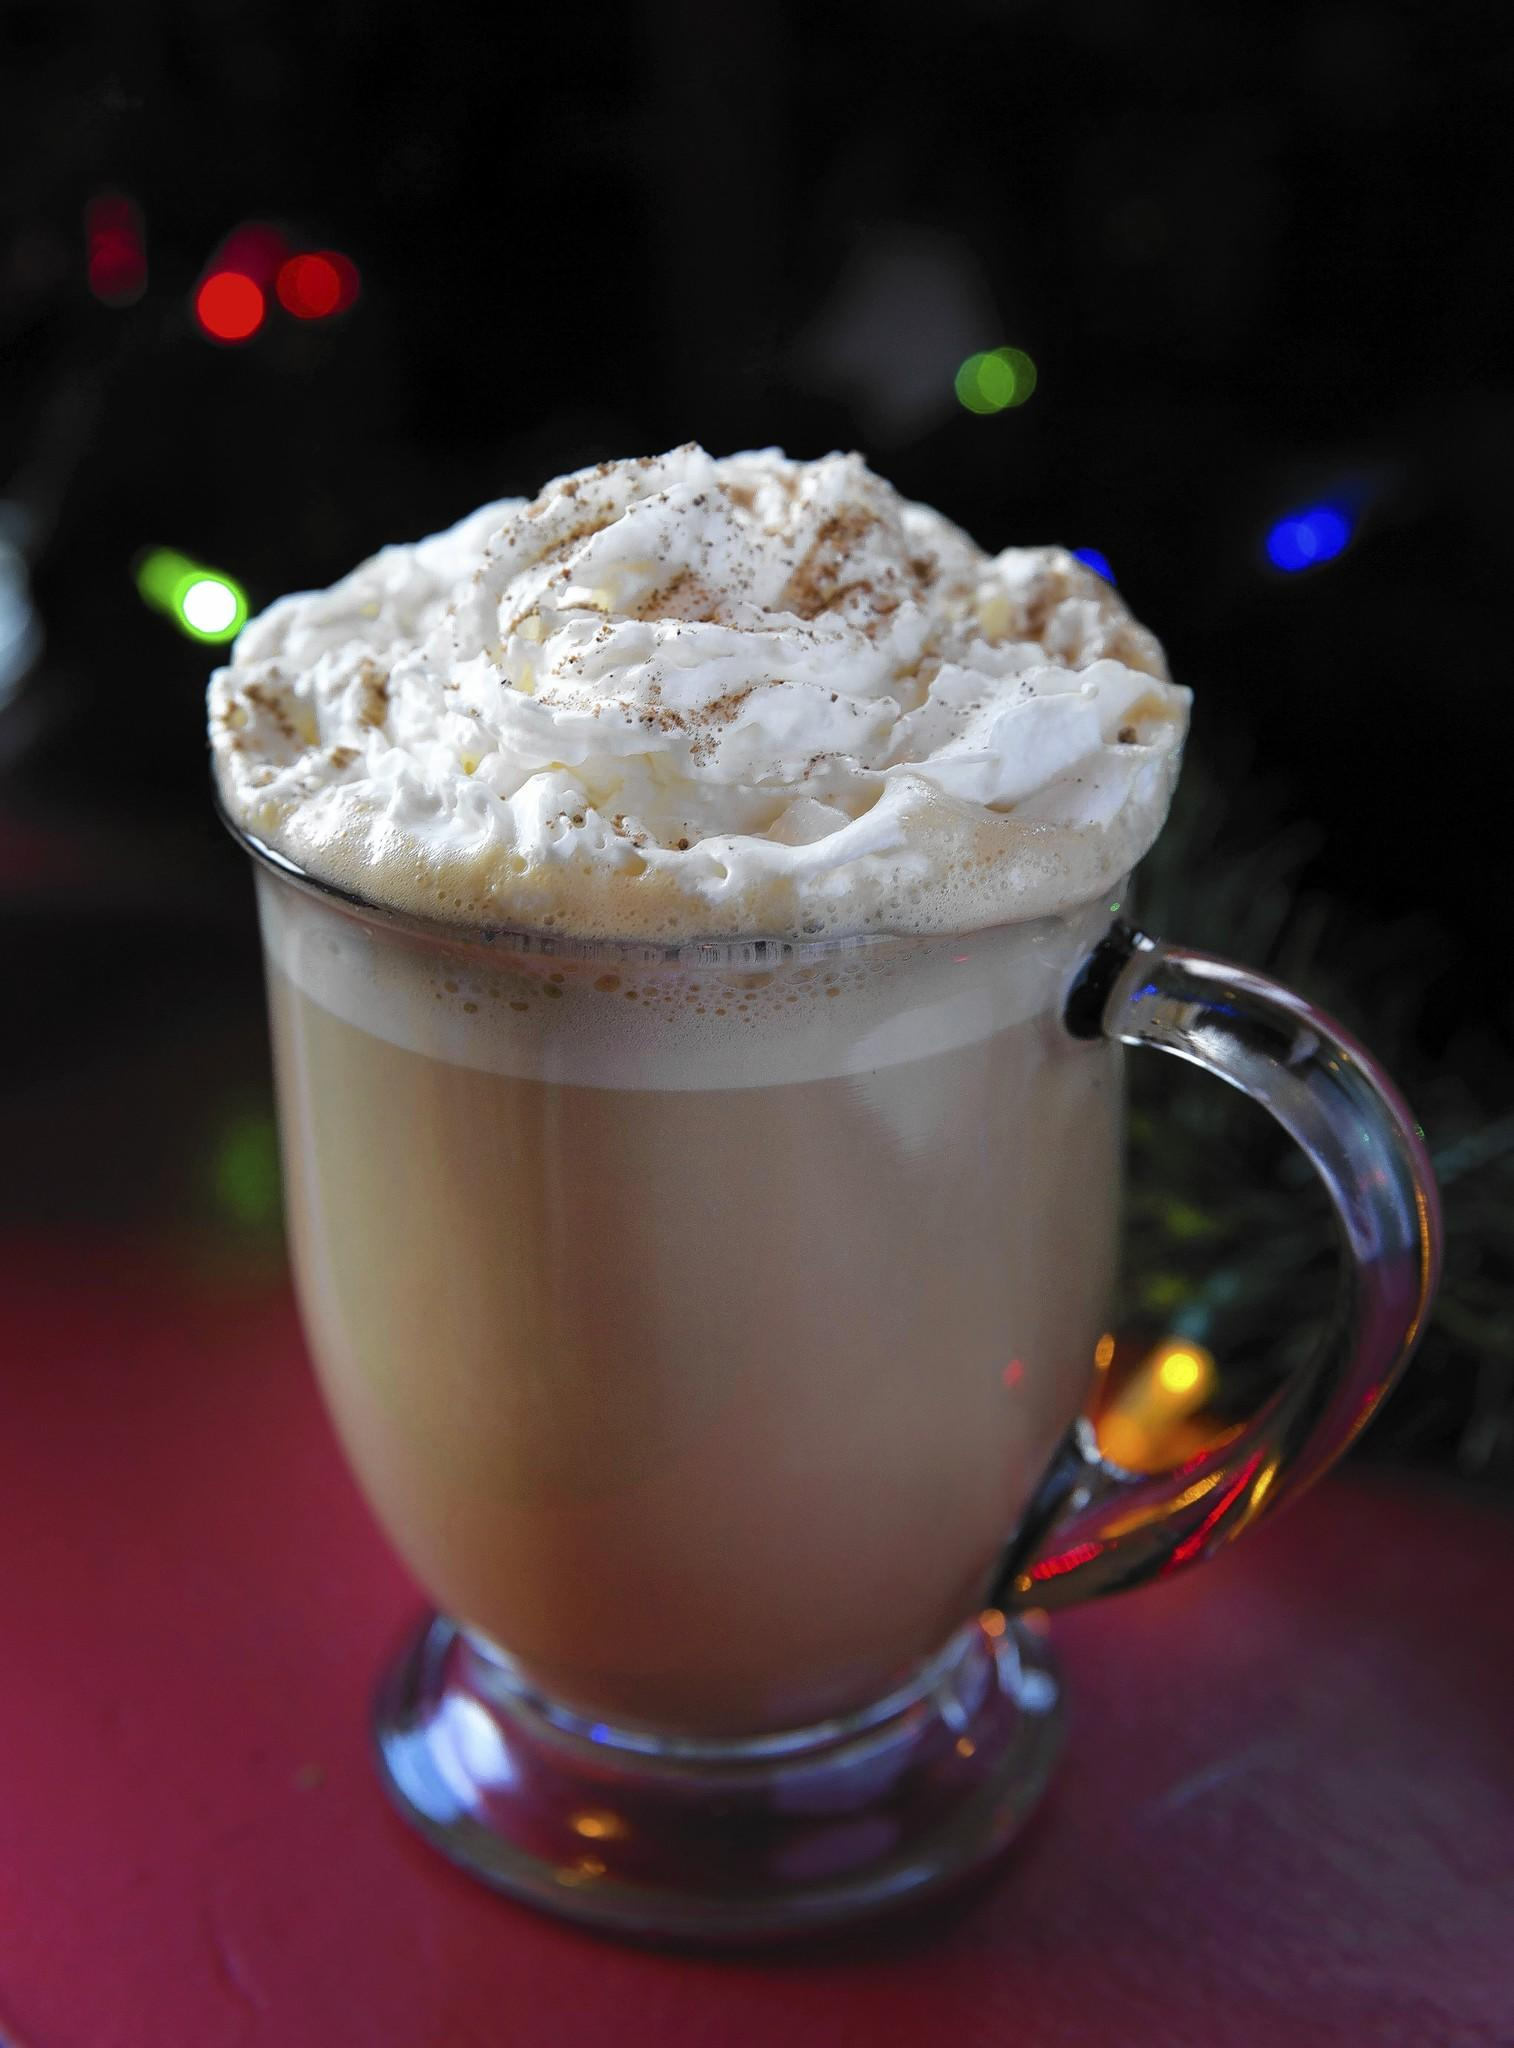 The Scrooge eggnog cocktail at Kristoffer's Cafe & Bakery in Chicago.